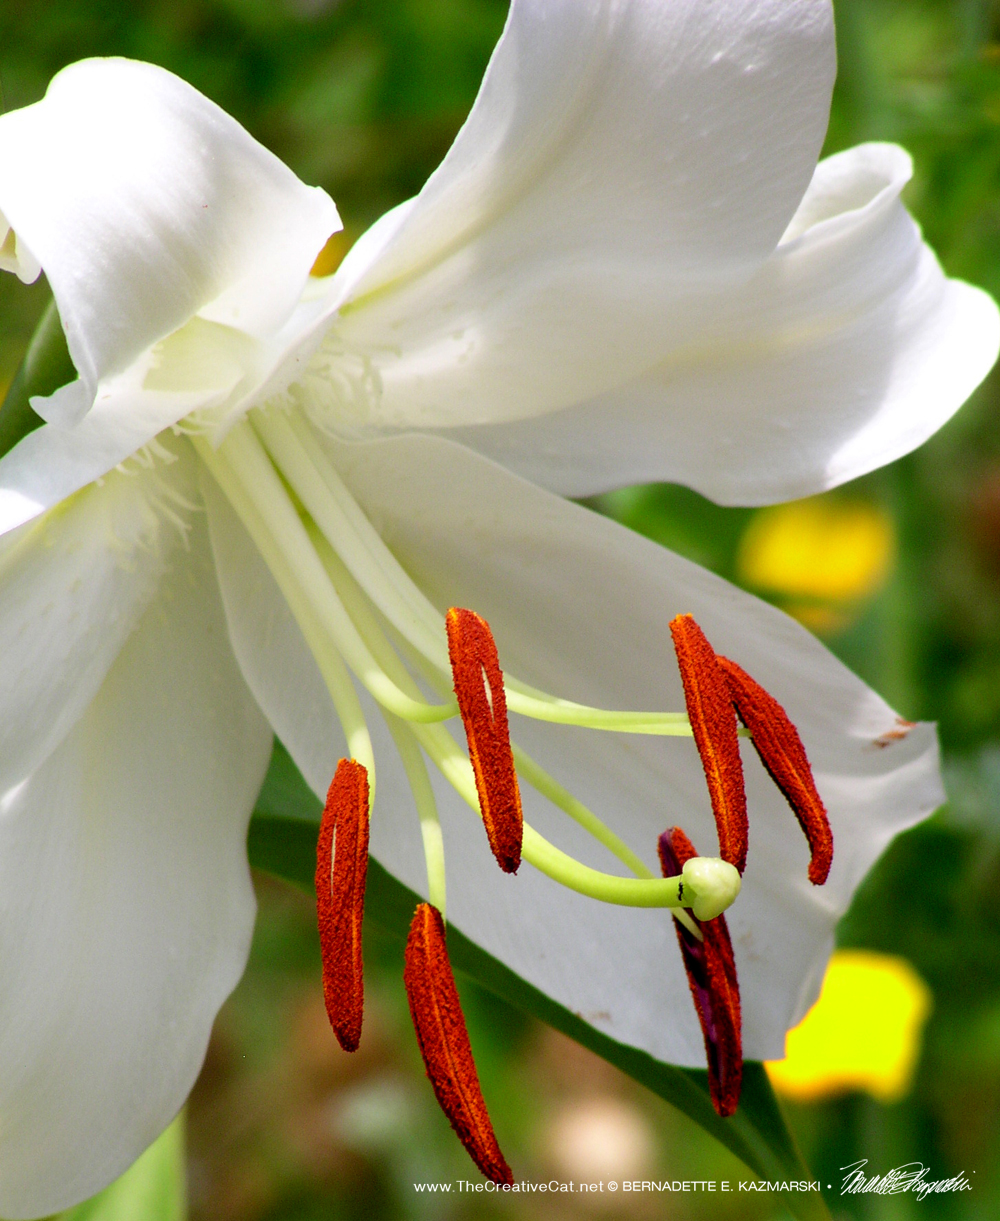 Leave the Lilies Outside: Toxic Plants and Cut Flowers